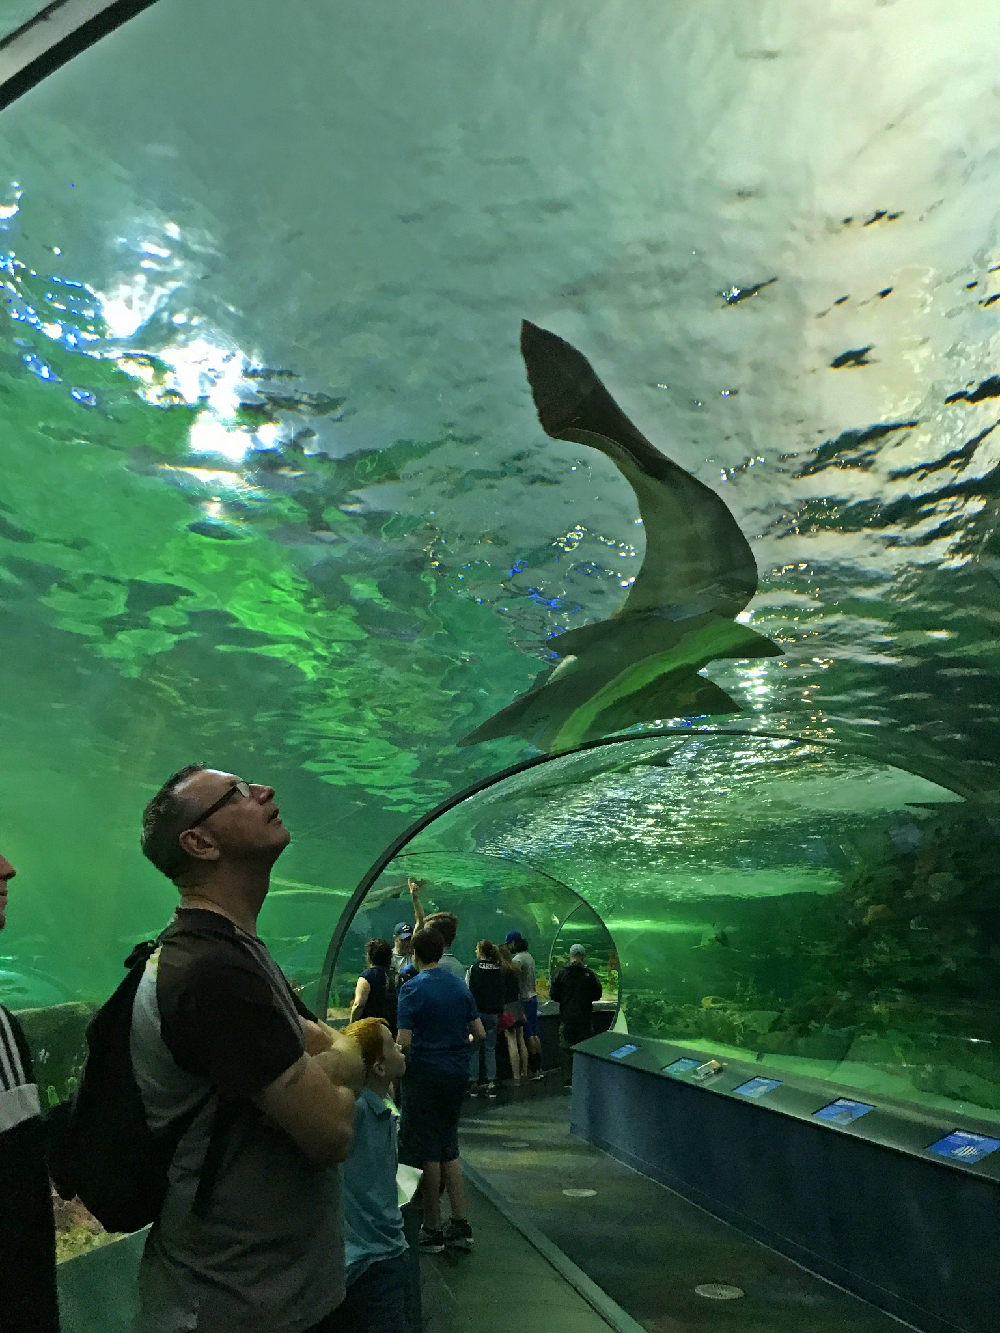 People looking at the rays and sharks from the immersive walkway at Ripley's aquarium in Toronto